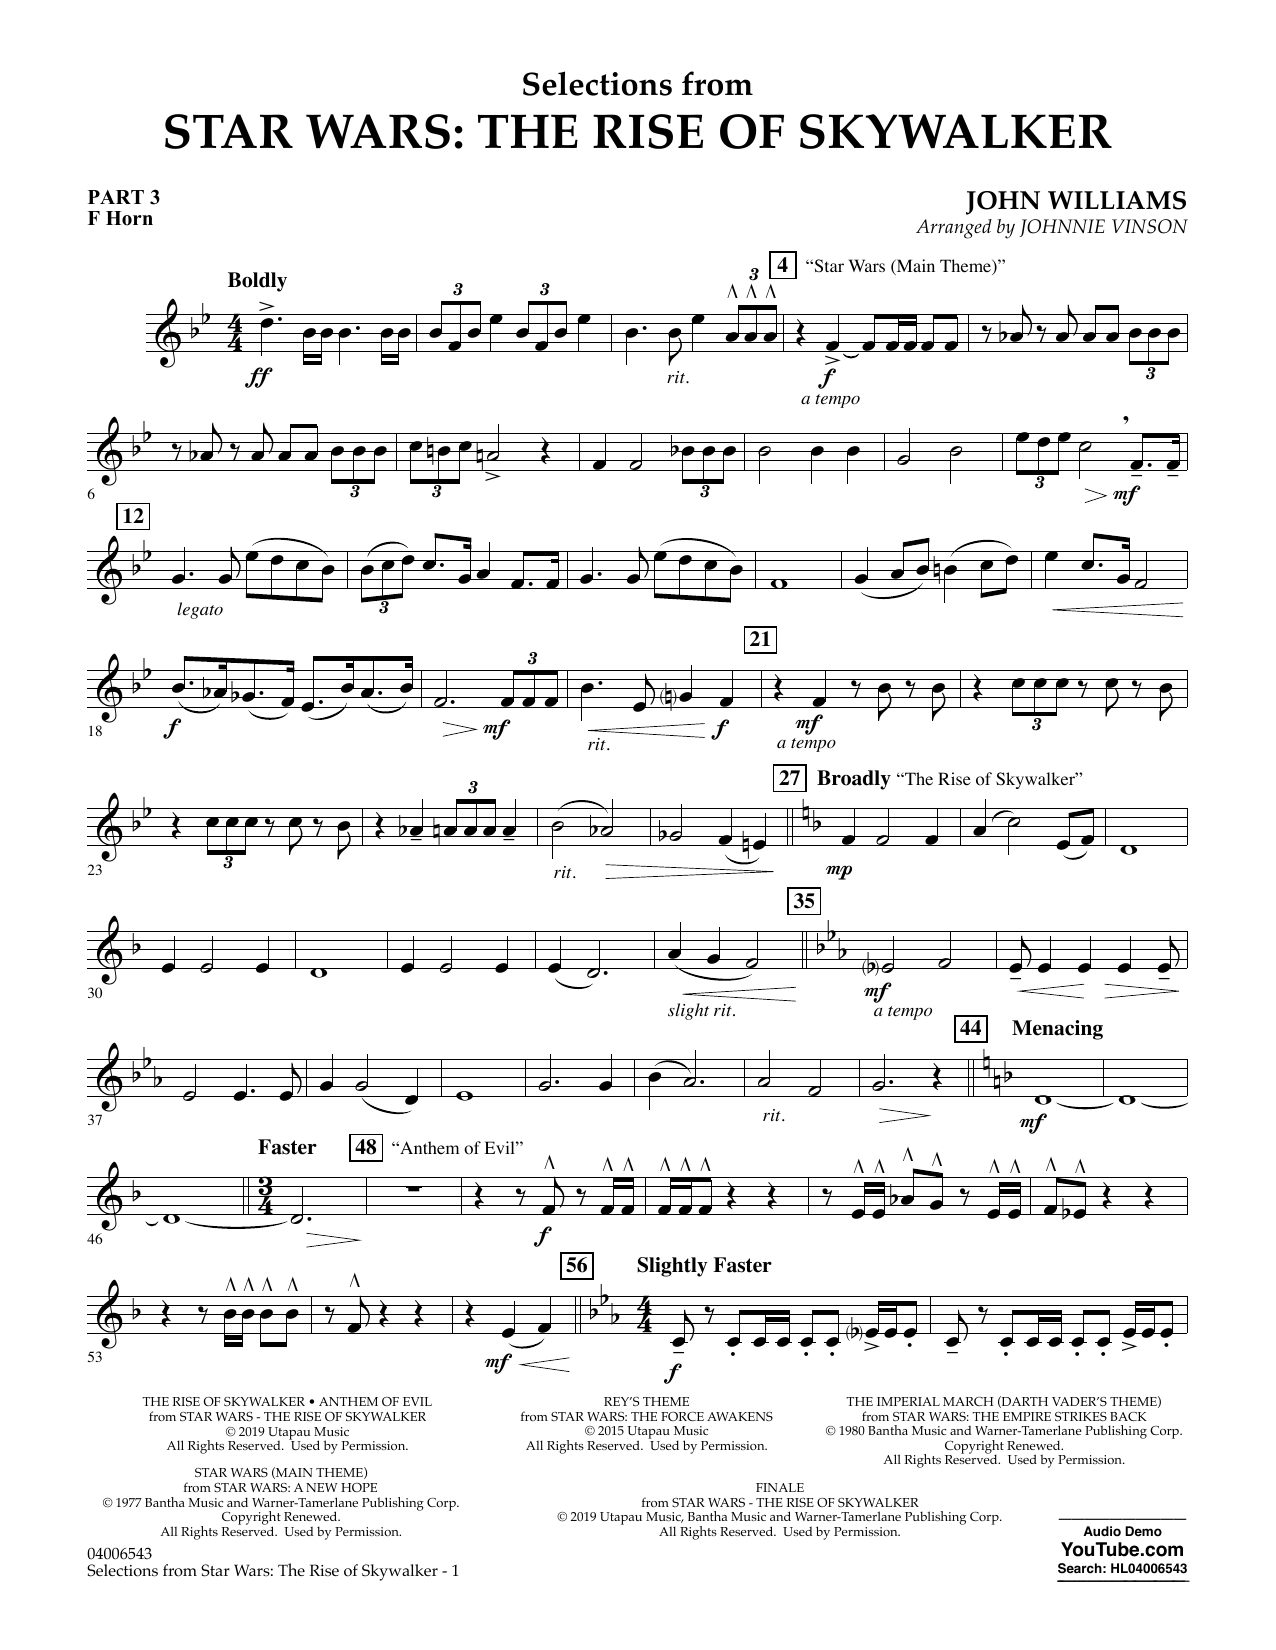 John Williams Selections from Star Wars: The Rise of Skywalker - Pt.3 - F Horn sheet music notes and chords. Download Printable PDF.